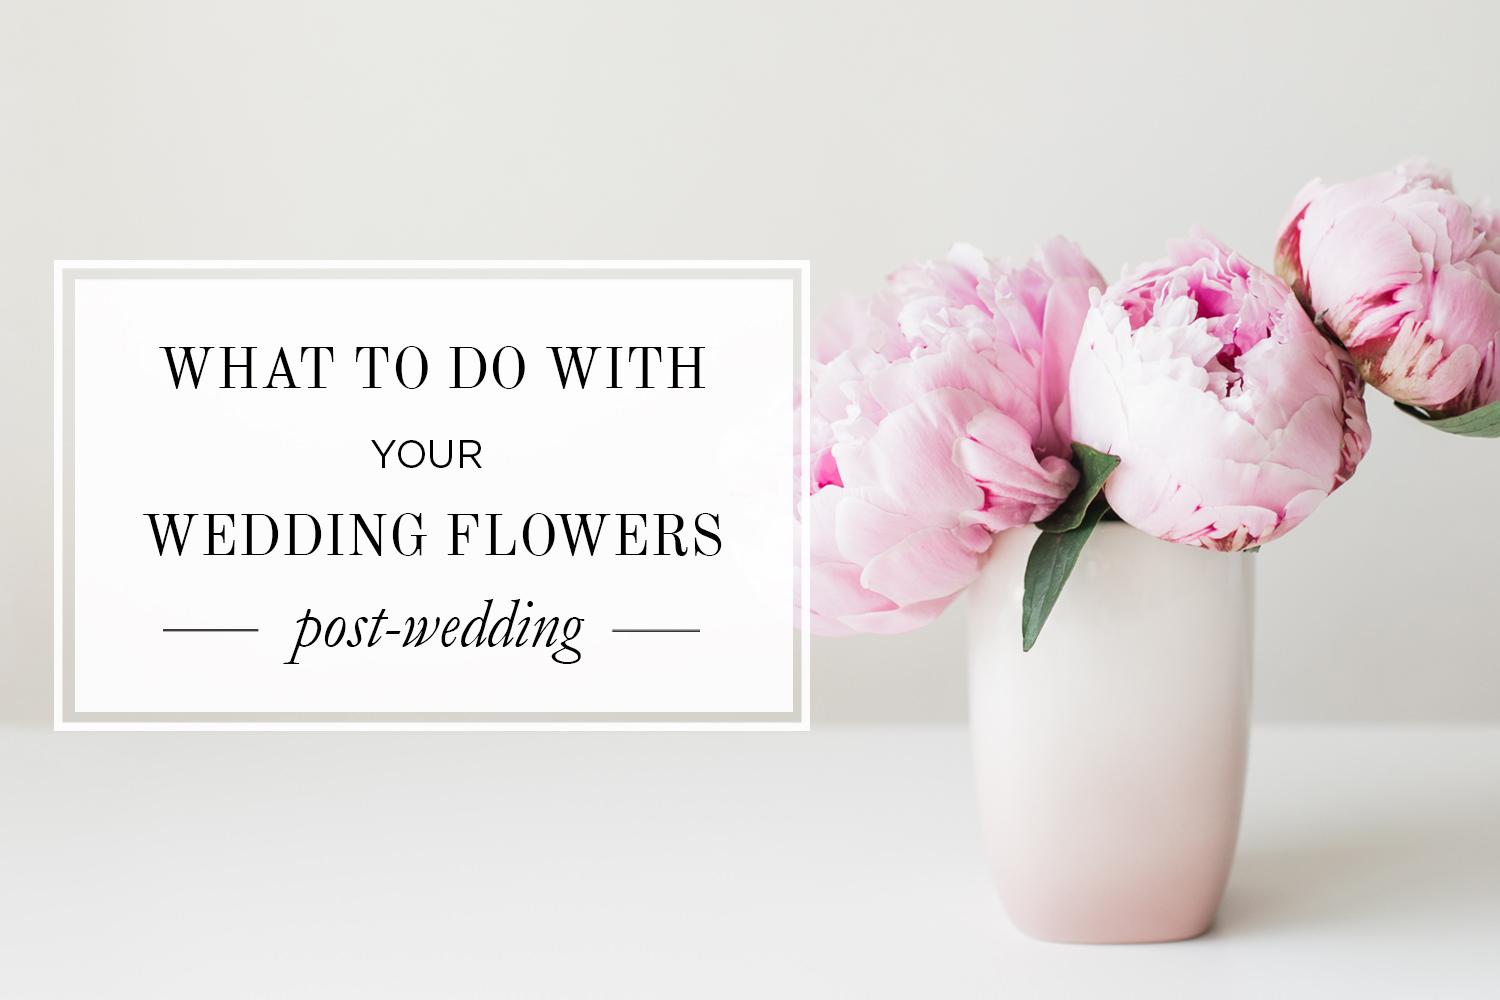 What To Do With Wedding Flowers After Your Wedding